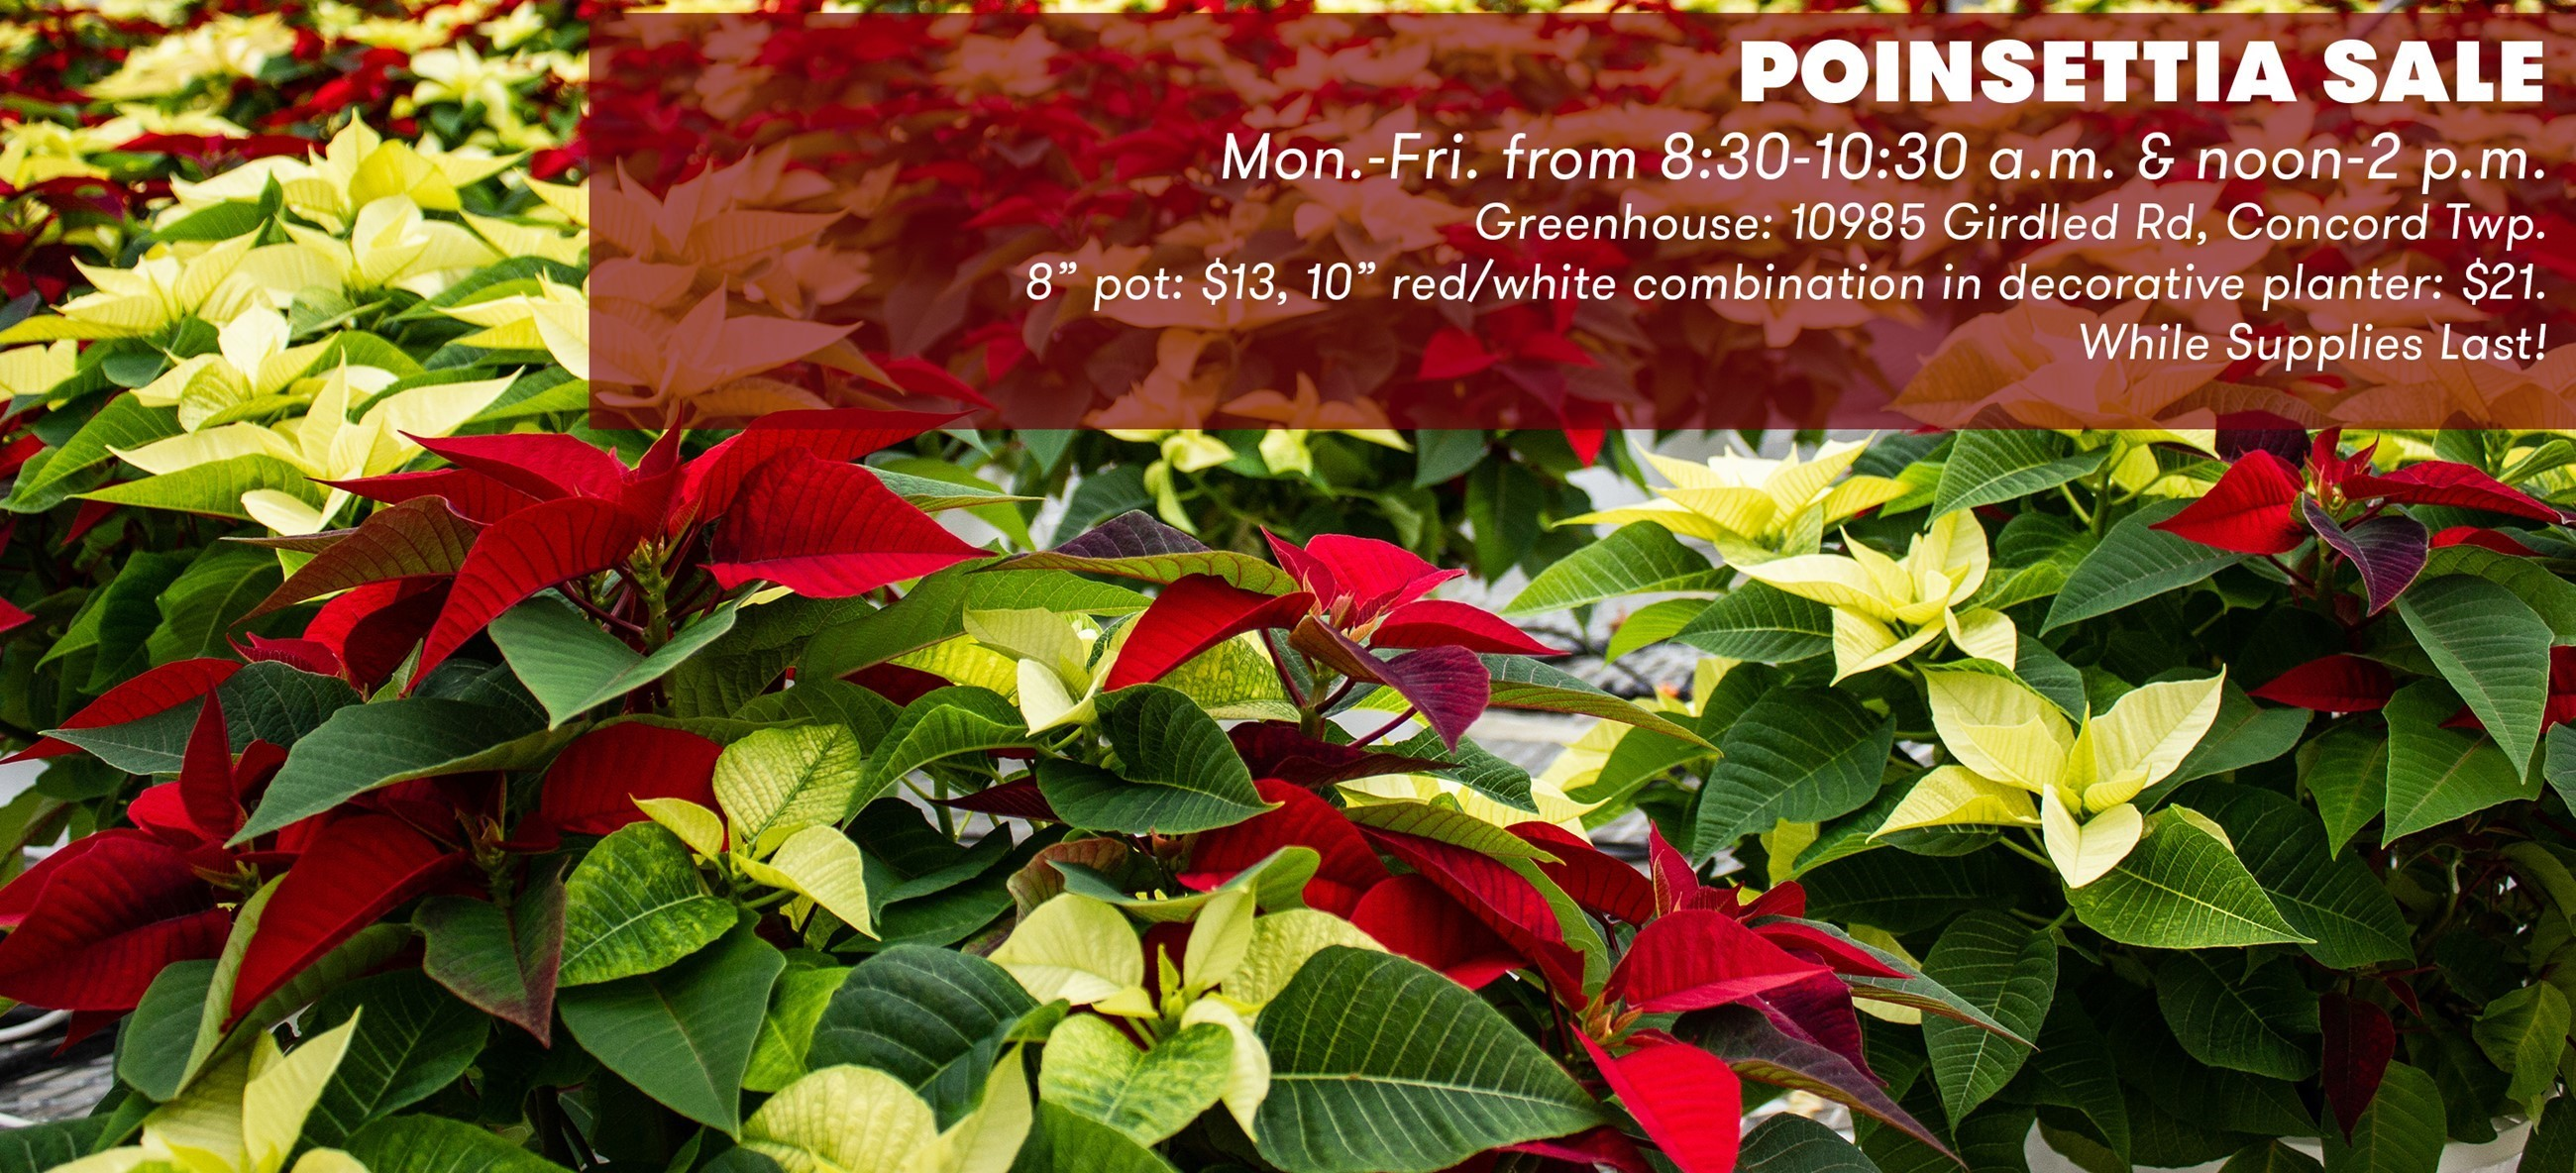 Poinsettias in red and white